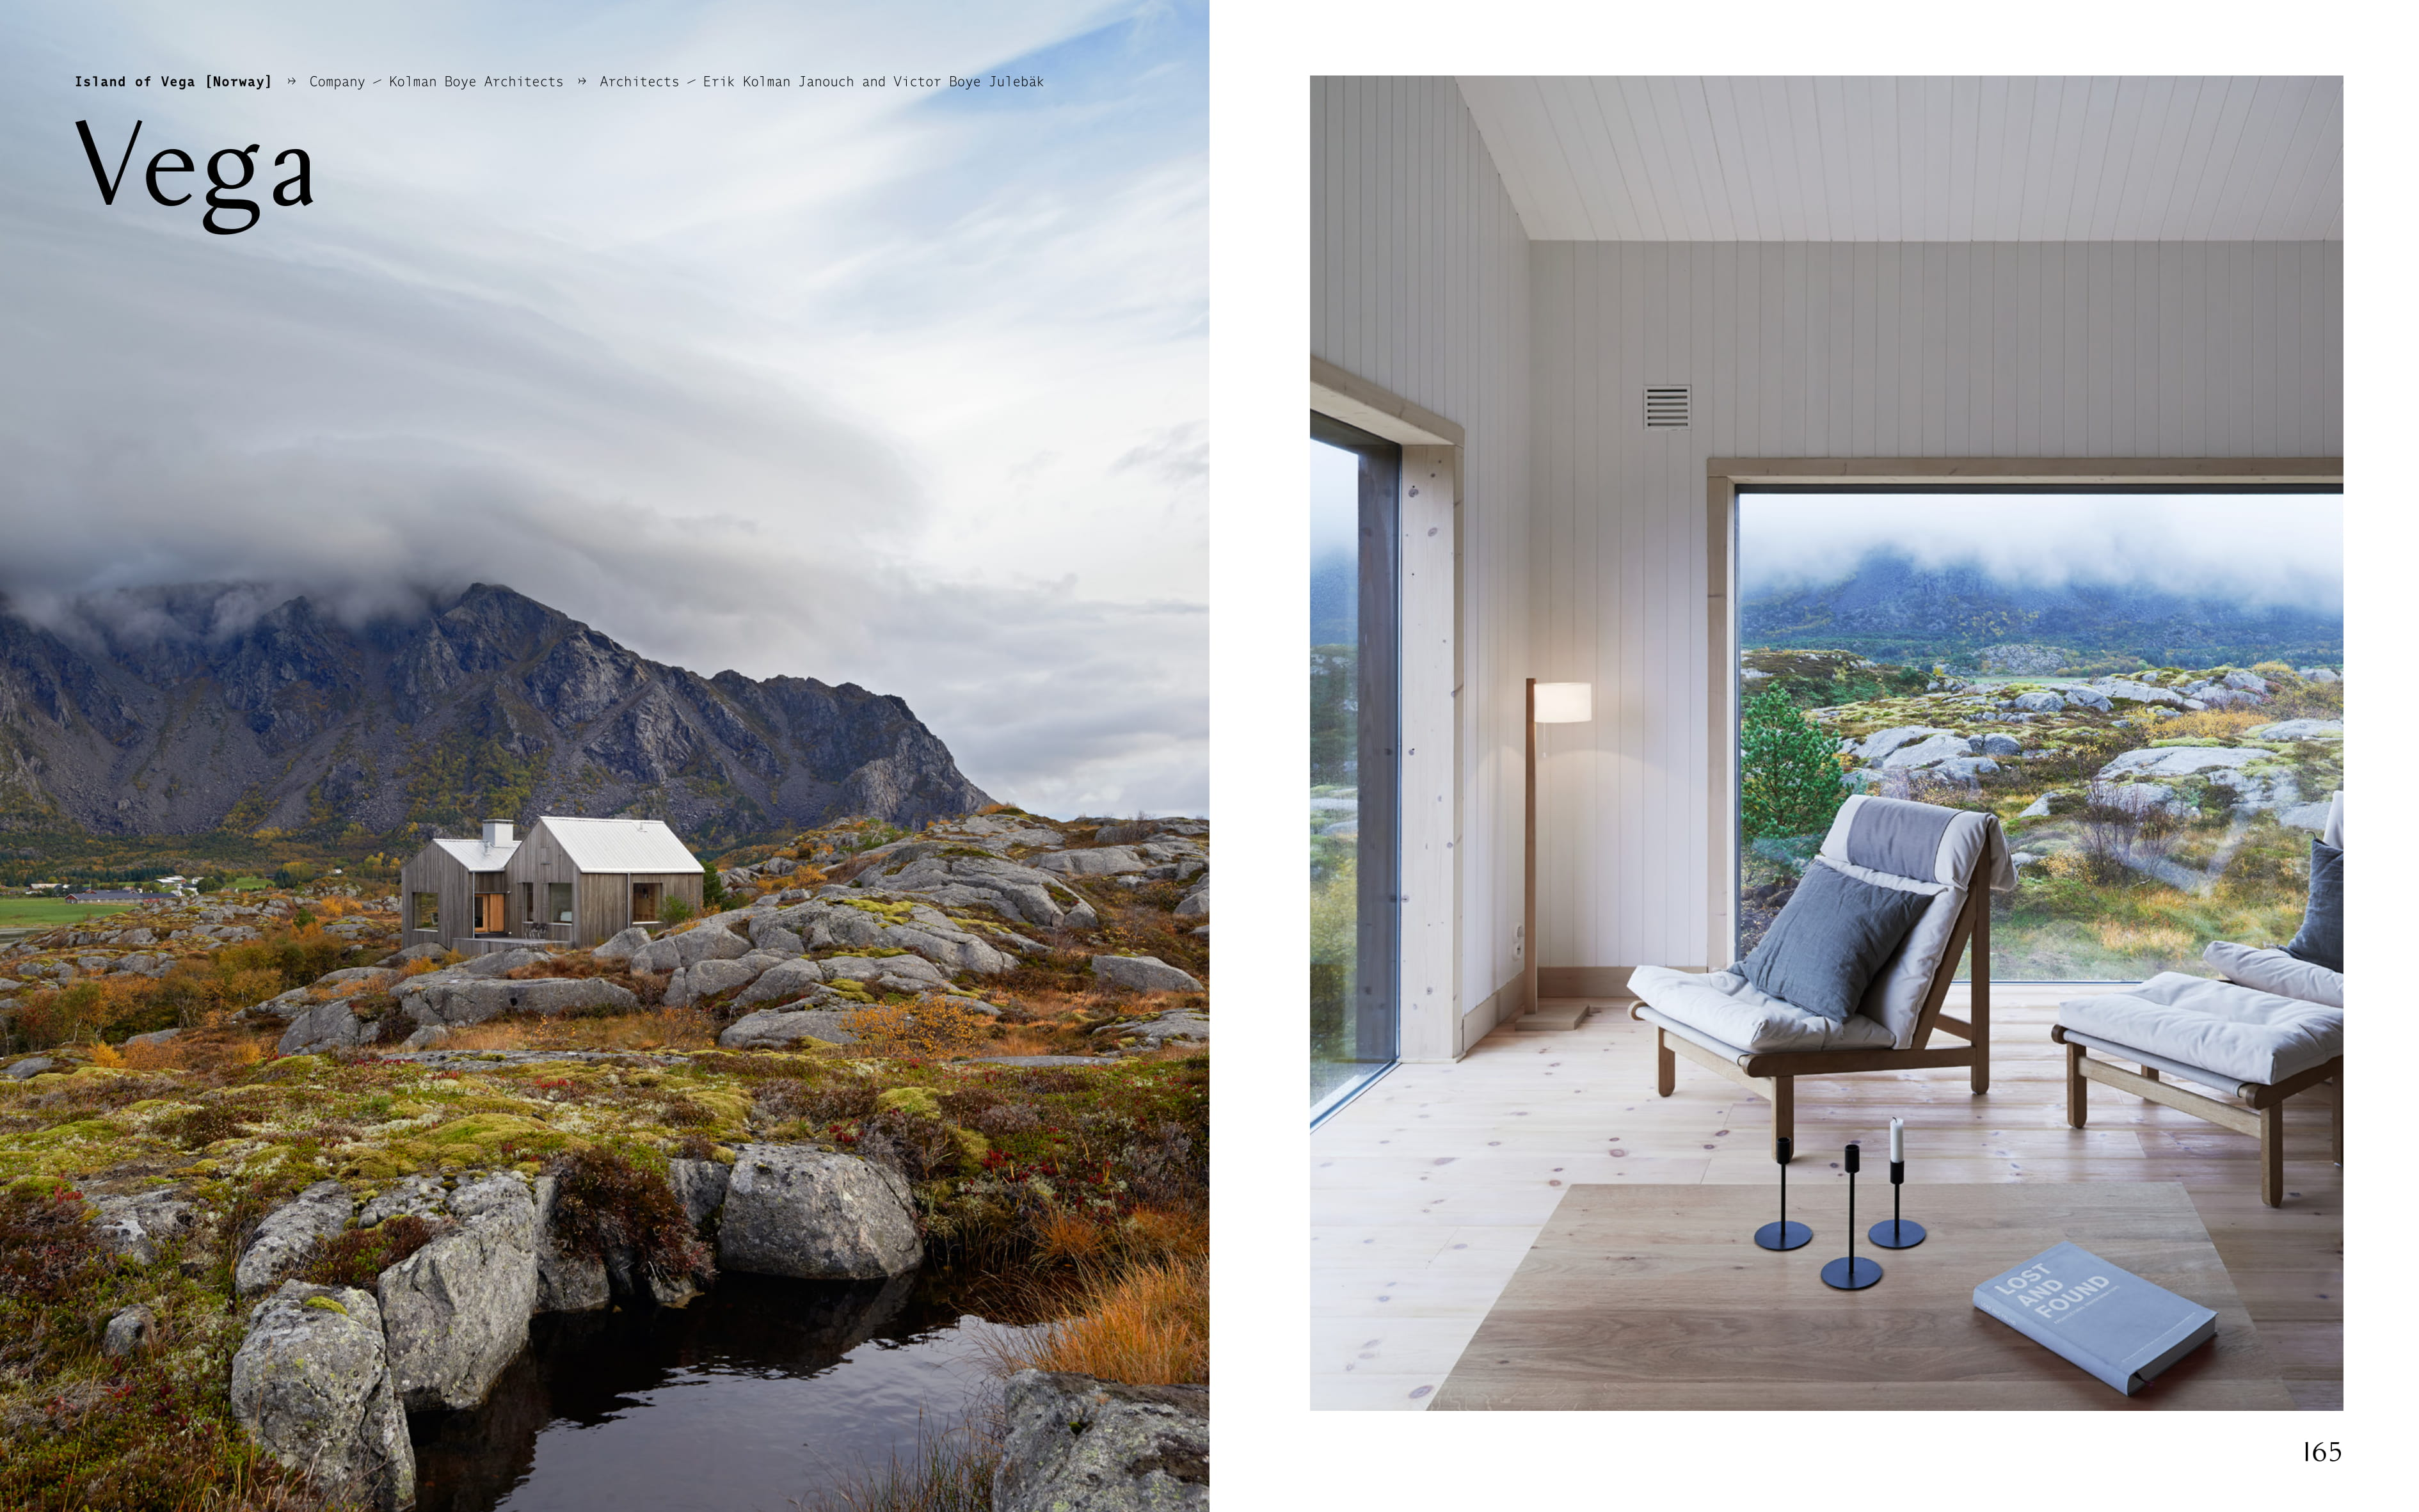 By Angel Trinidad from Scandinavia Dreaming: Nordic Homes, Interiors and Design copyright Gestalten 2016